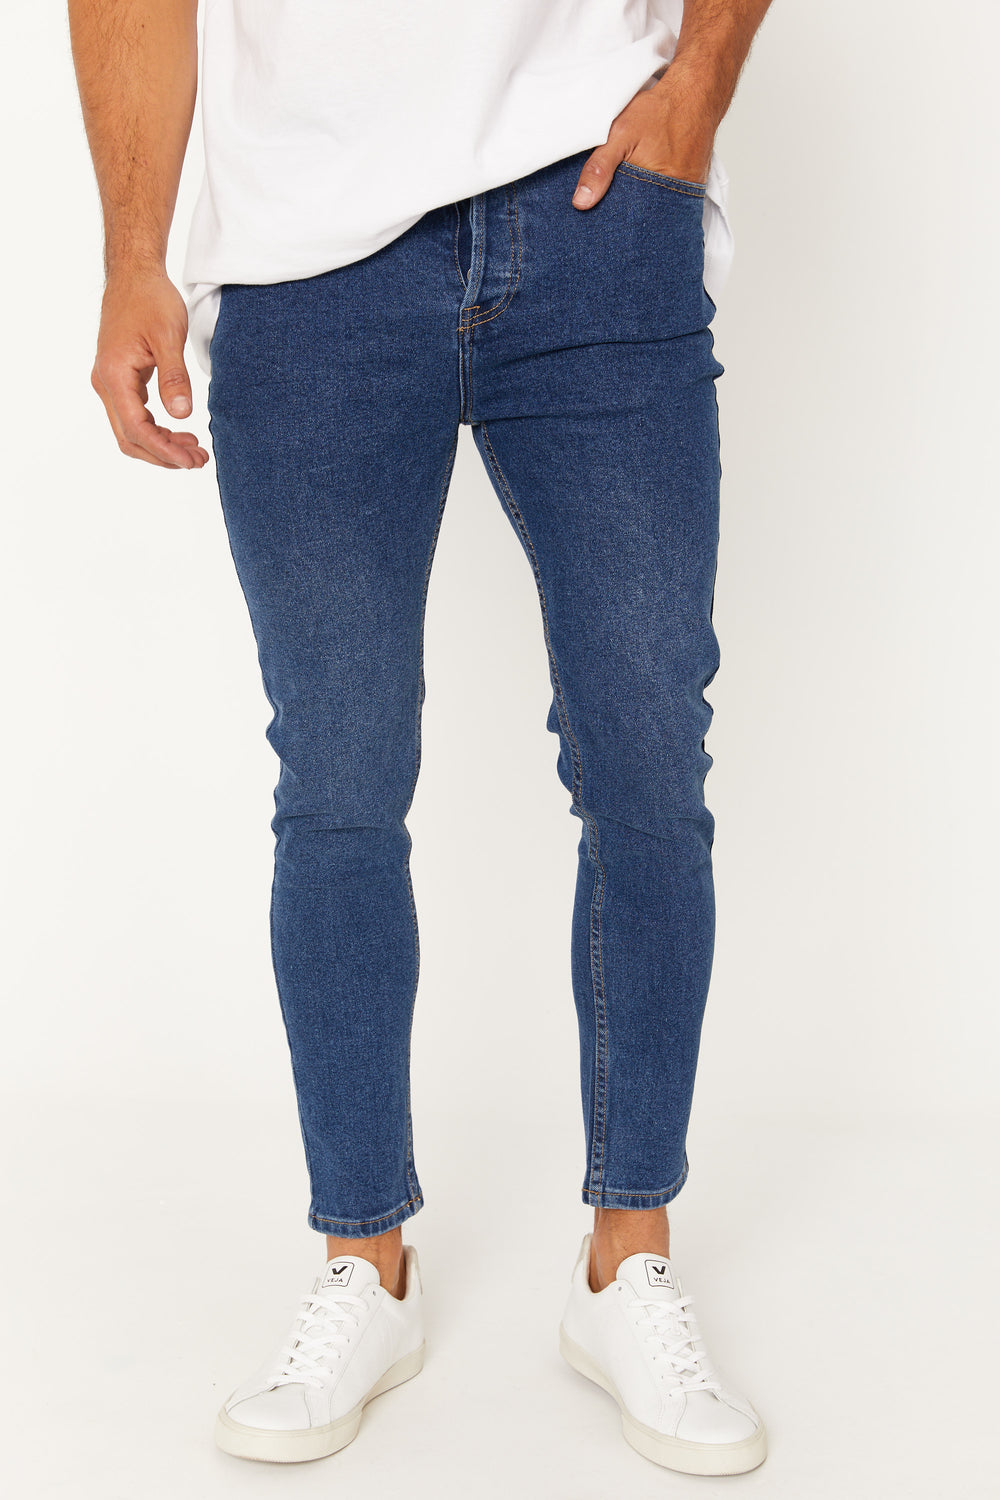 NTH Real Skinnys Dark Blue